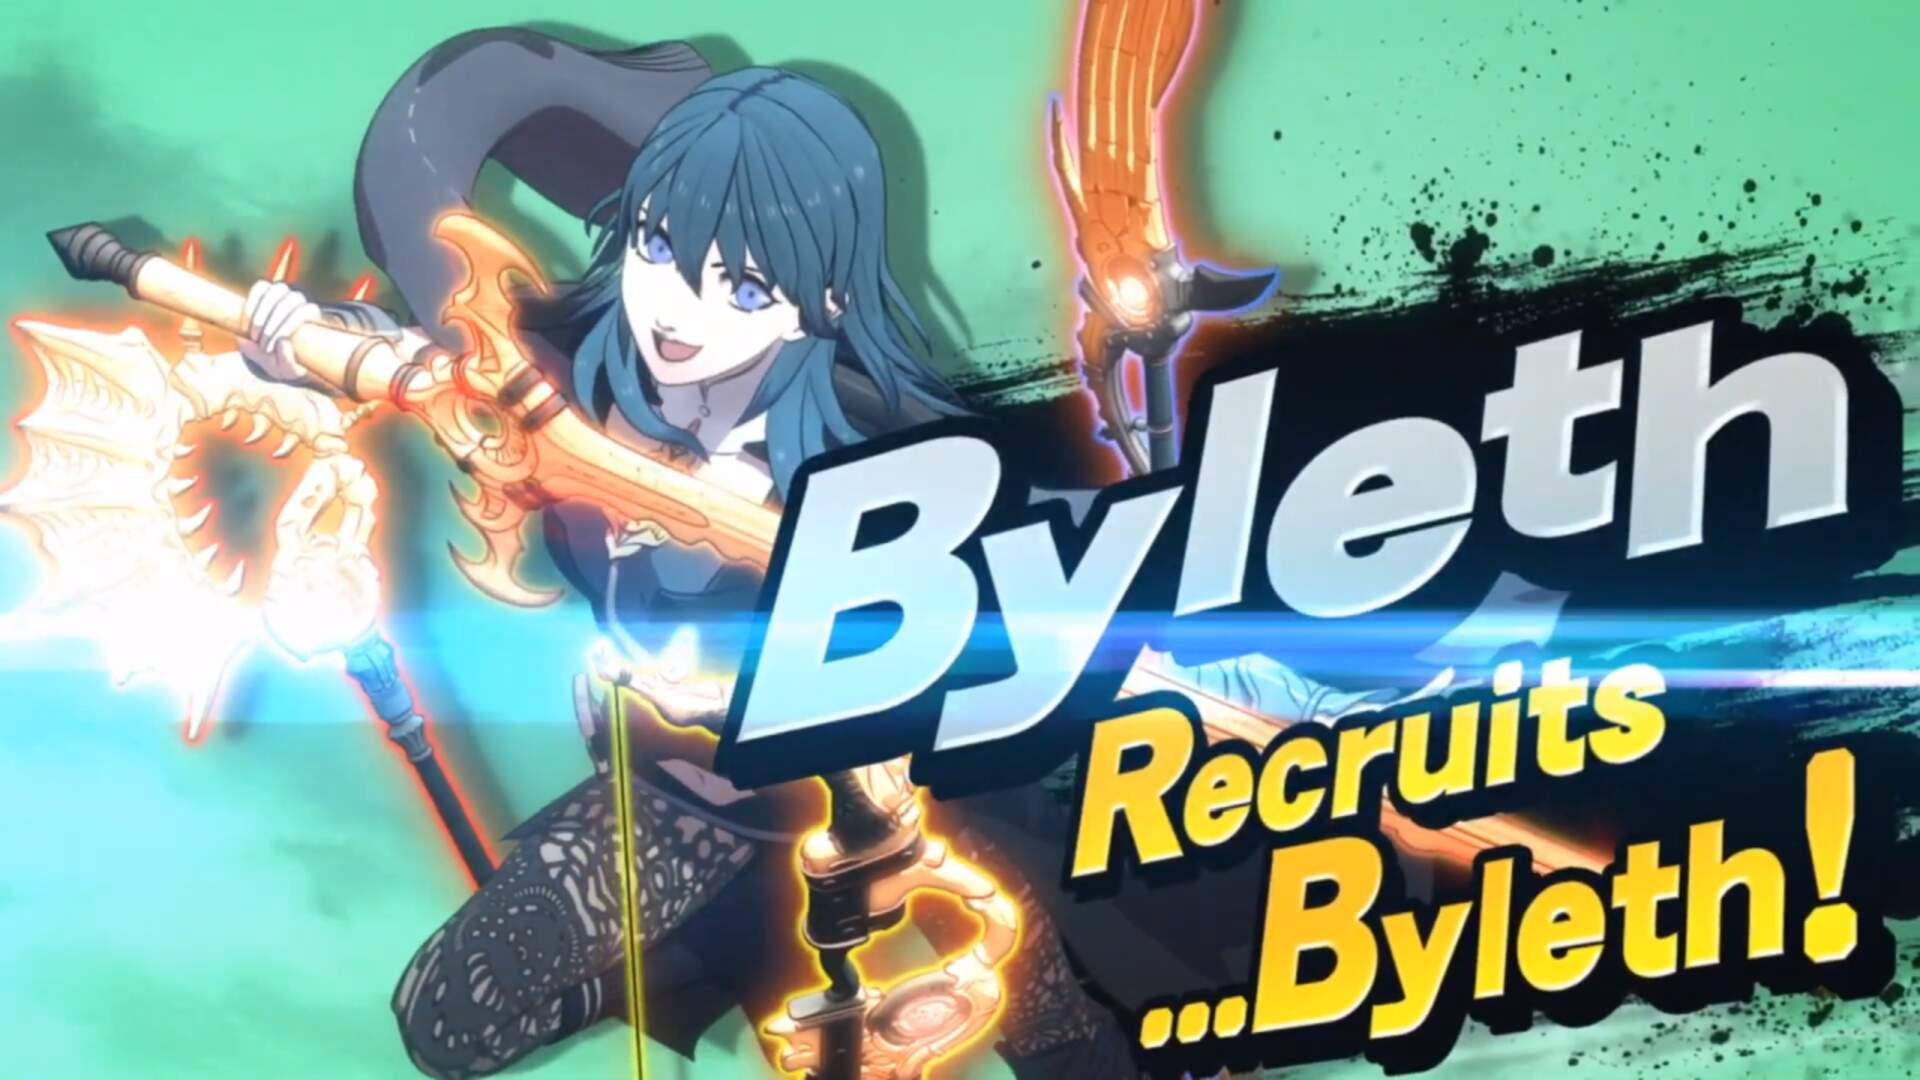 Byleth is the Next Fighter Joining Super Smash Bros. Ultimate